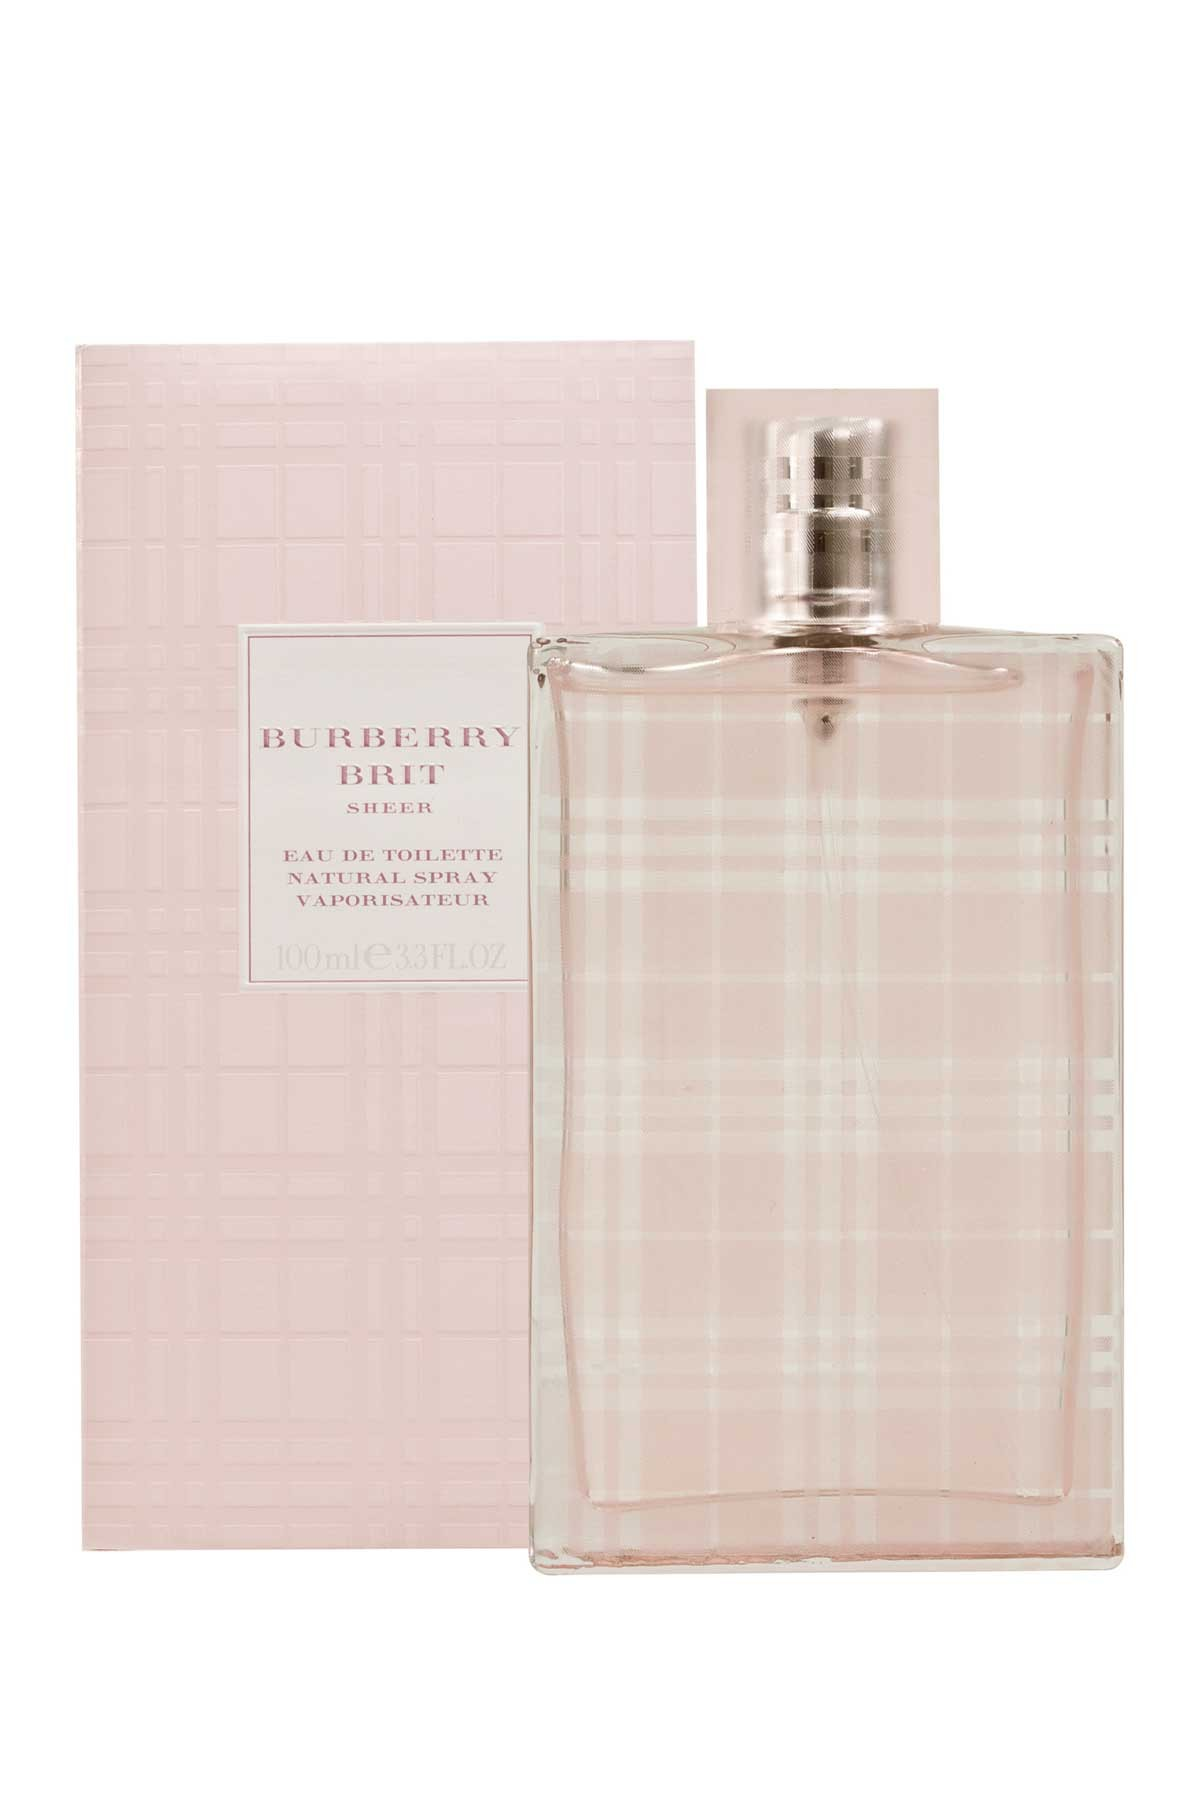 231a159d4 Women's Brit Sheer Eau de Toilette Spray - 3.3 fl. oz. on @HauteLook ...